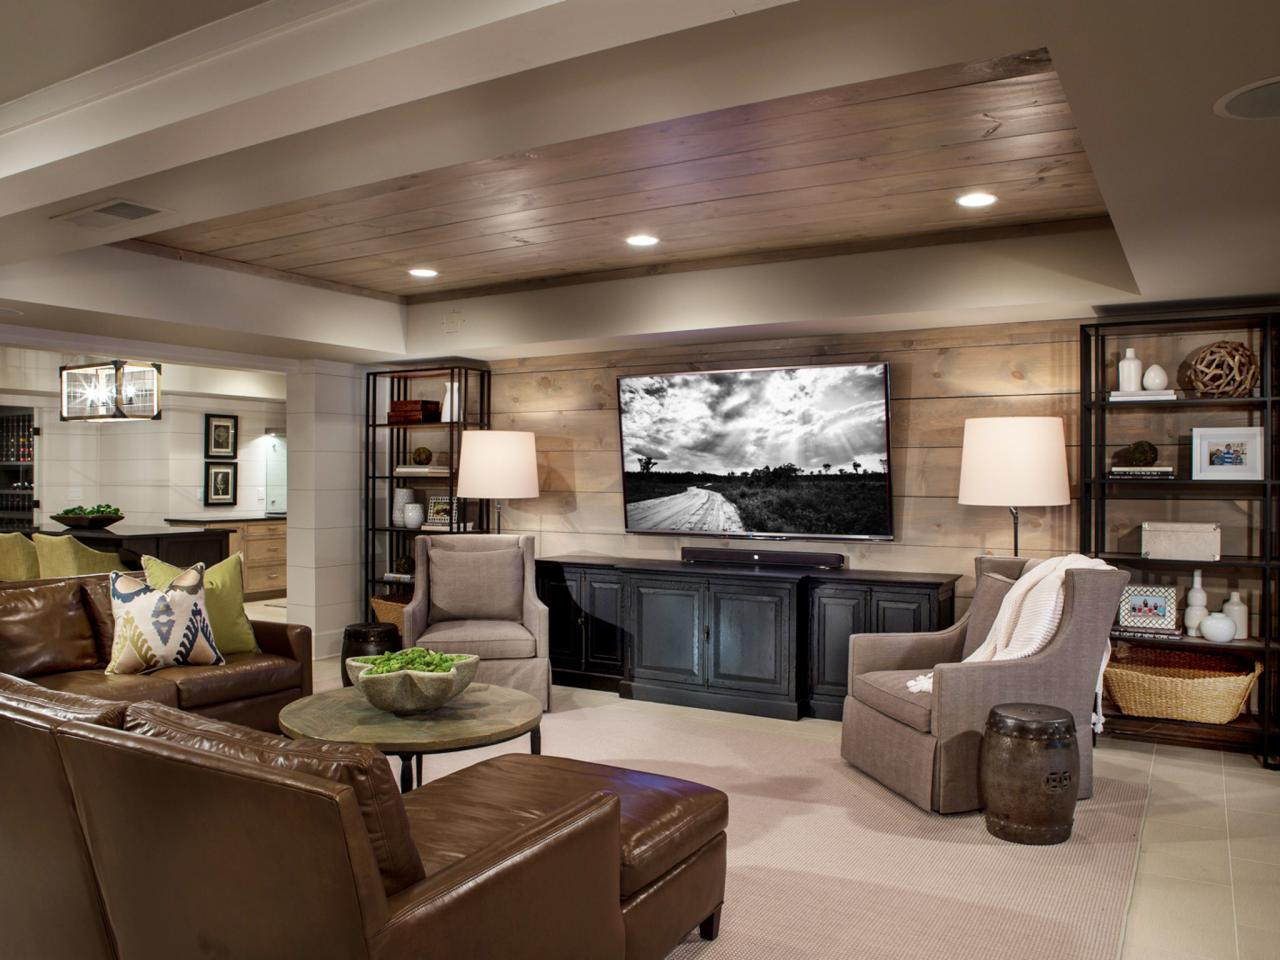 Interior Design Advice To Help Make Your Home Beautiful